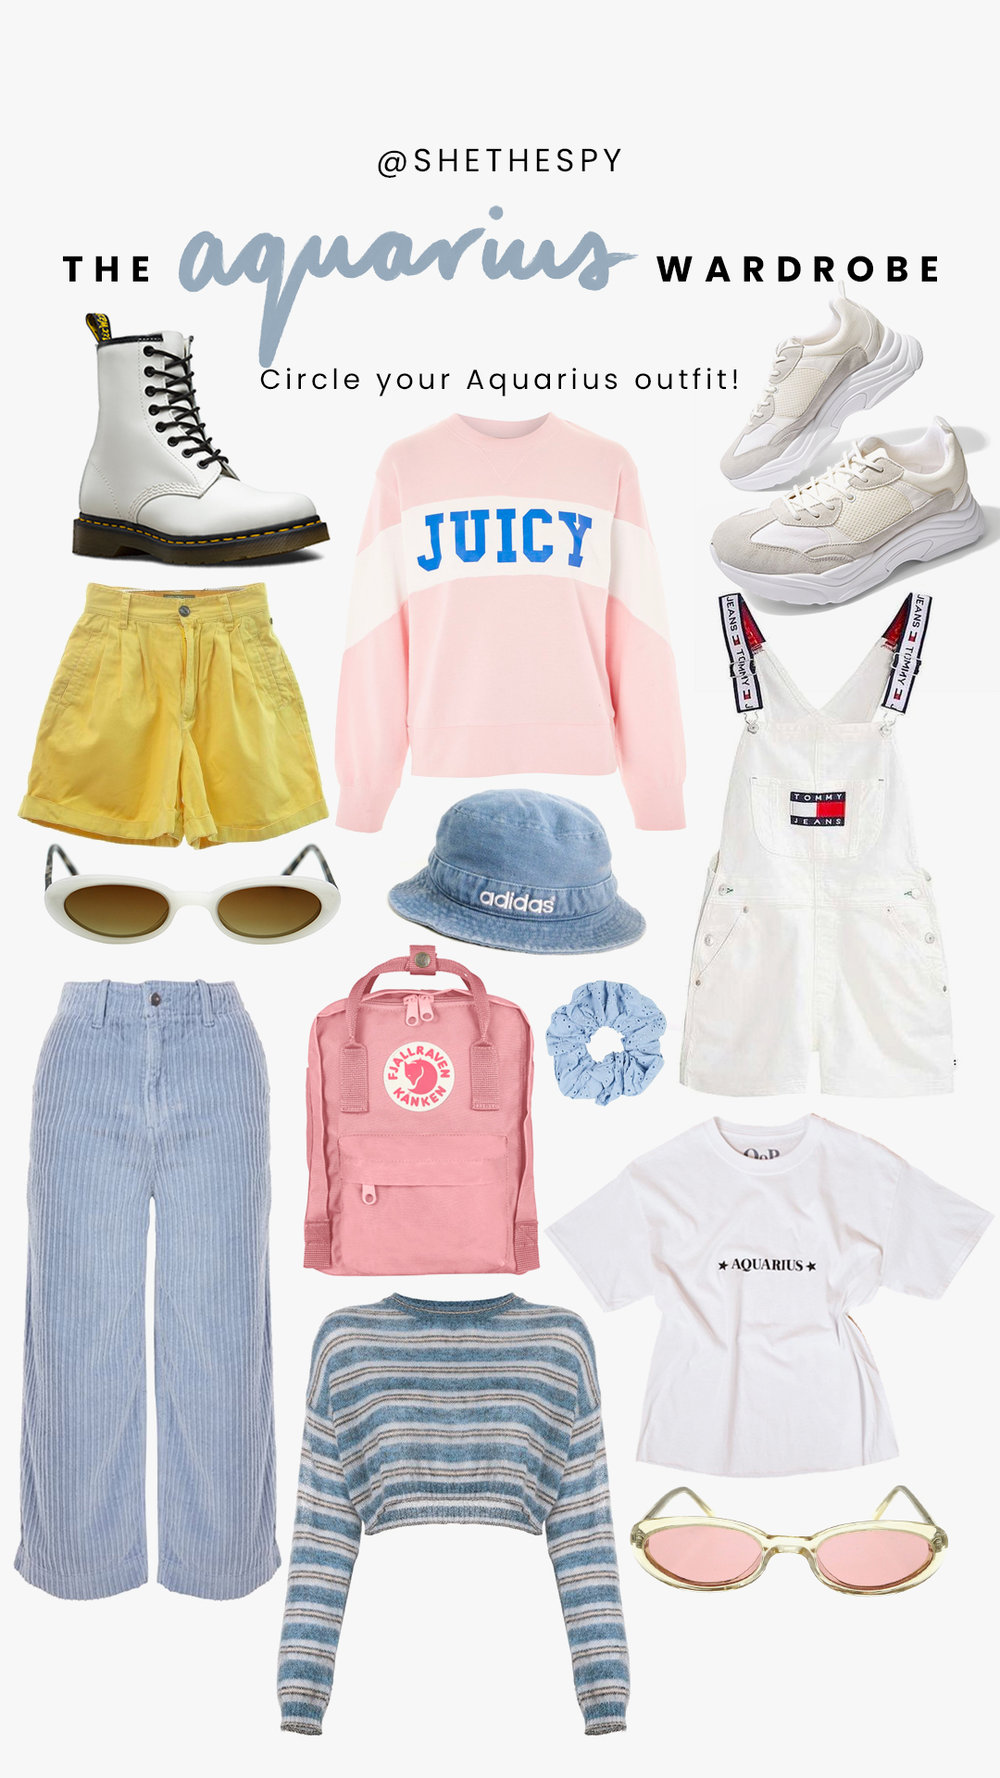 Shop Aquarius - Boots: Dr MartensJuicy sweater: TopshopSneakers: TopshopWhite sunglasses: ShevokeHat: Similar at Urban OutfittersOveralls: Tommy JeansScrunchie: Similar at Urban OutfittersPants: TopshopBackpack: FjallravenStripe sweater: UnknownTee: Princess PollyPink sunglasses: Shevoke